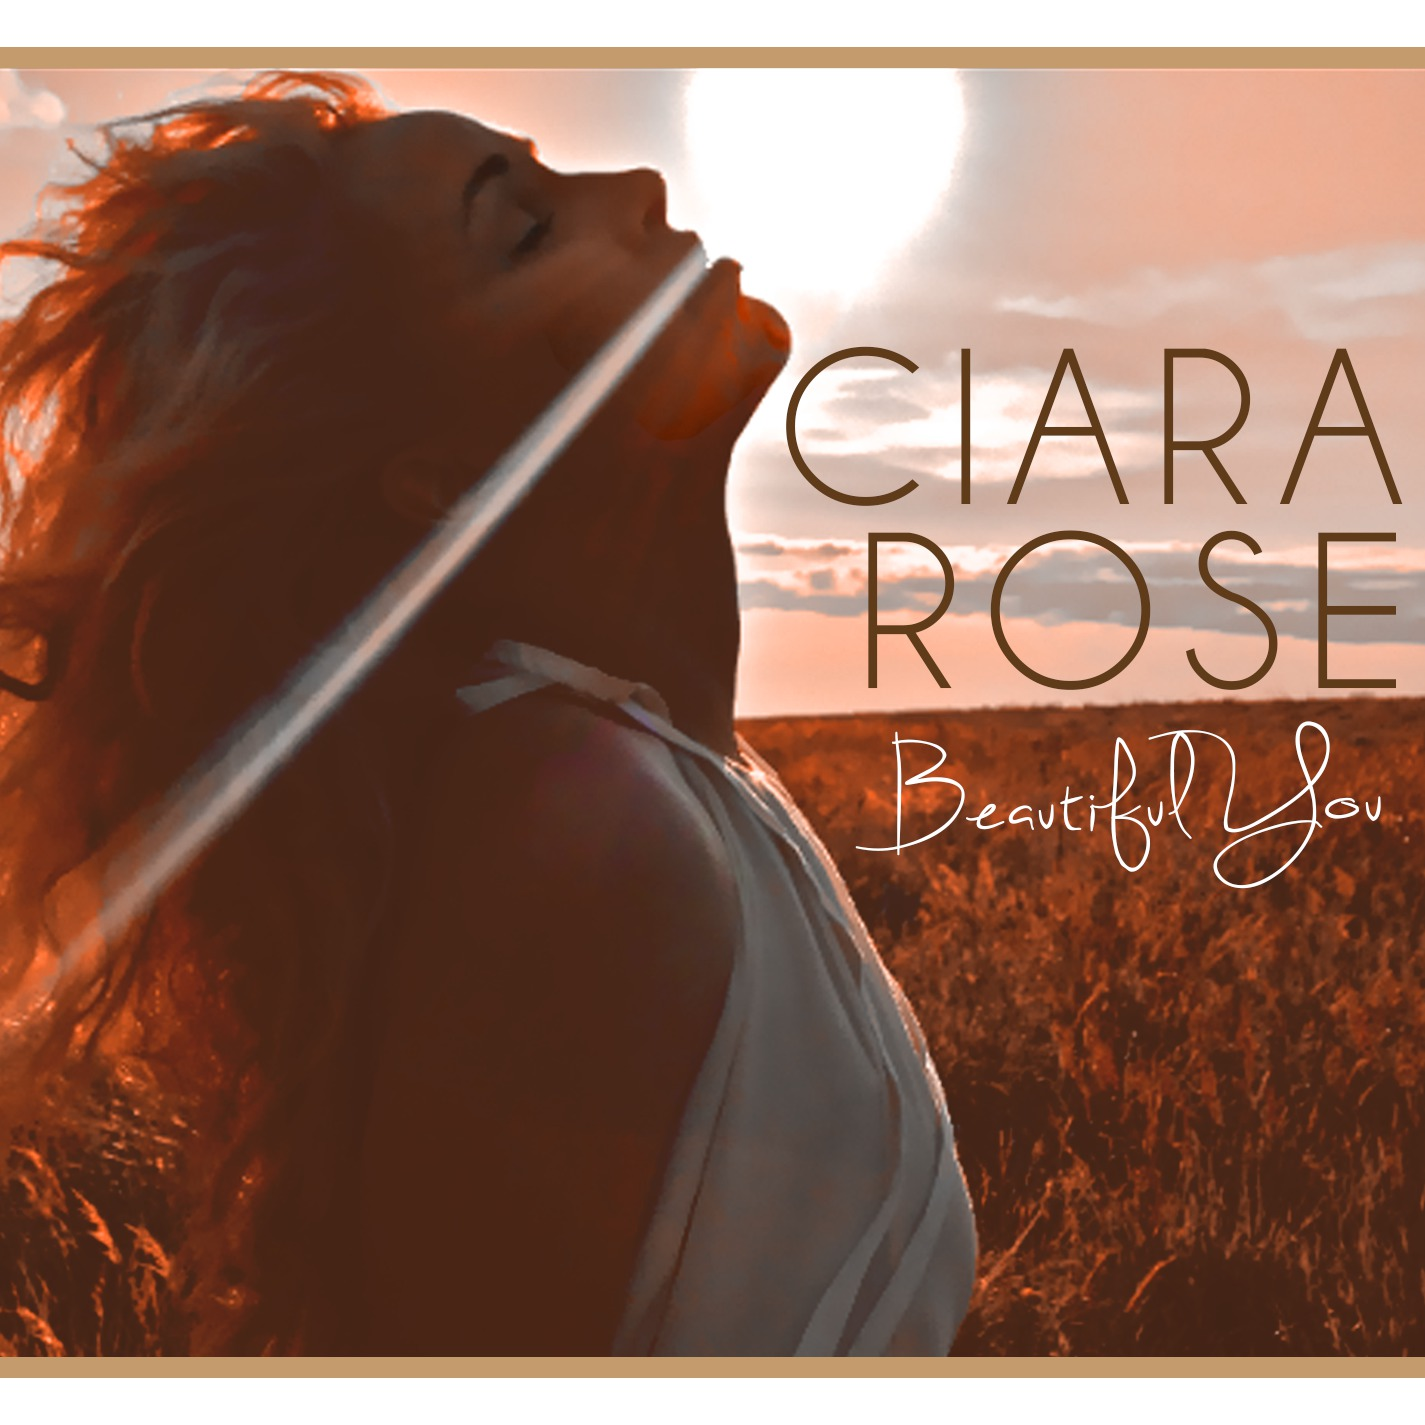 Ciara Rose Beautiful you